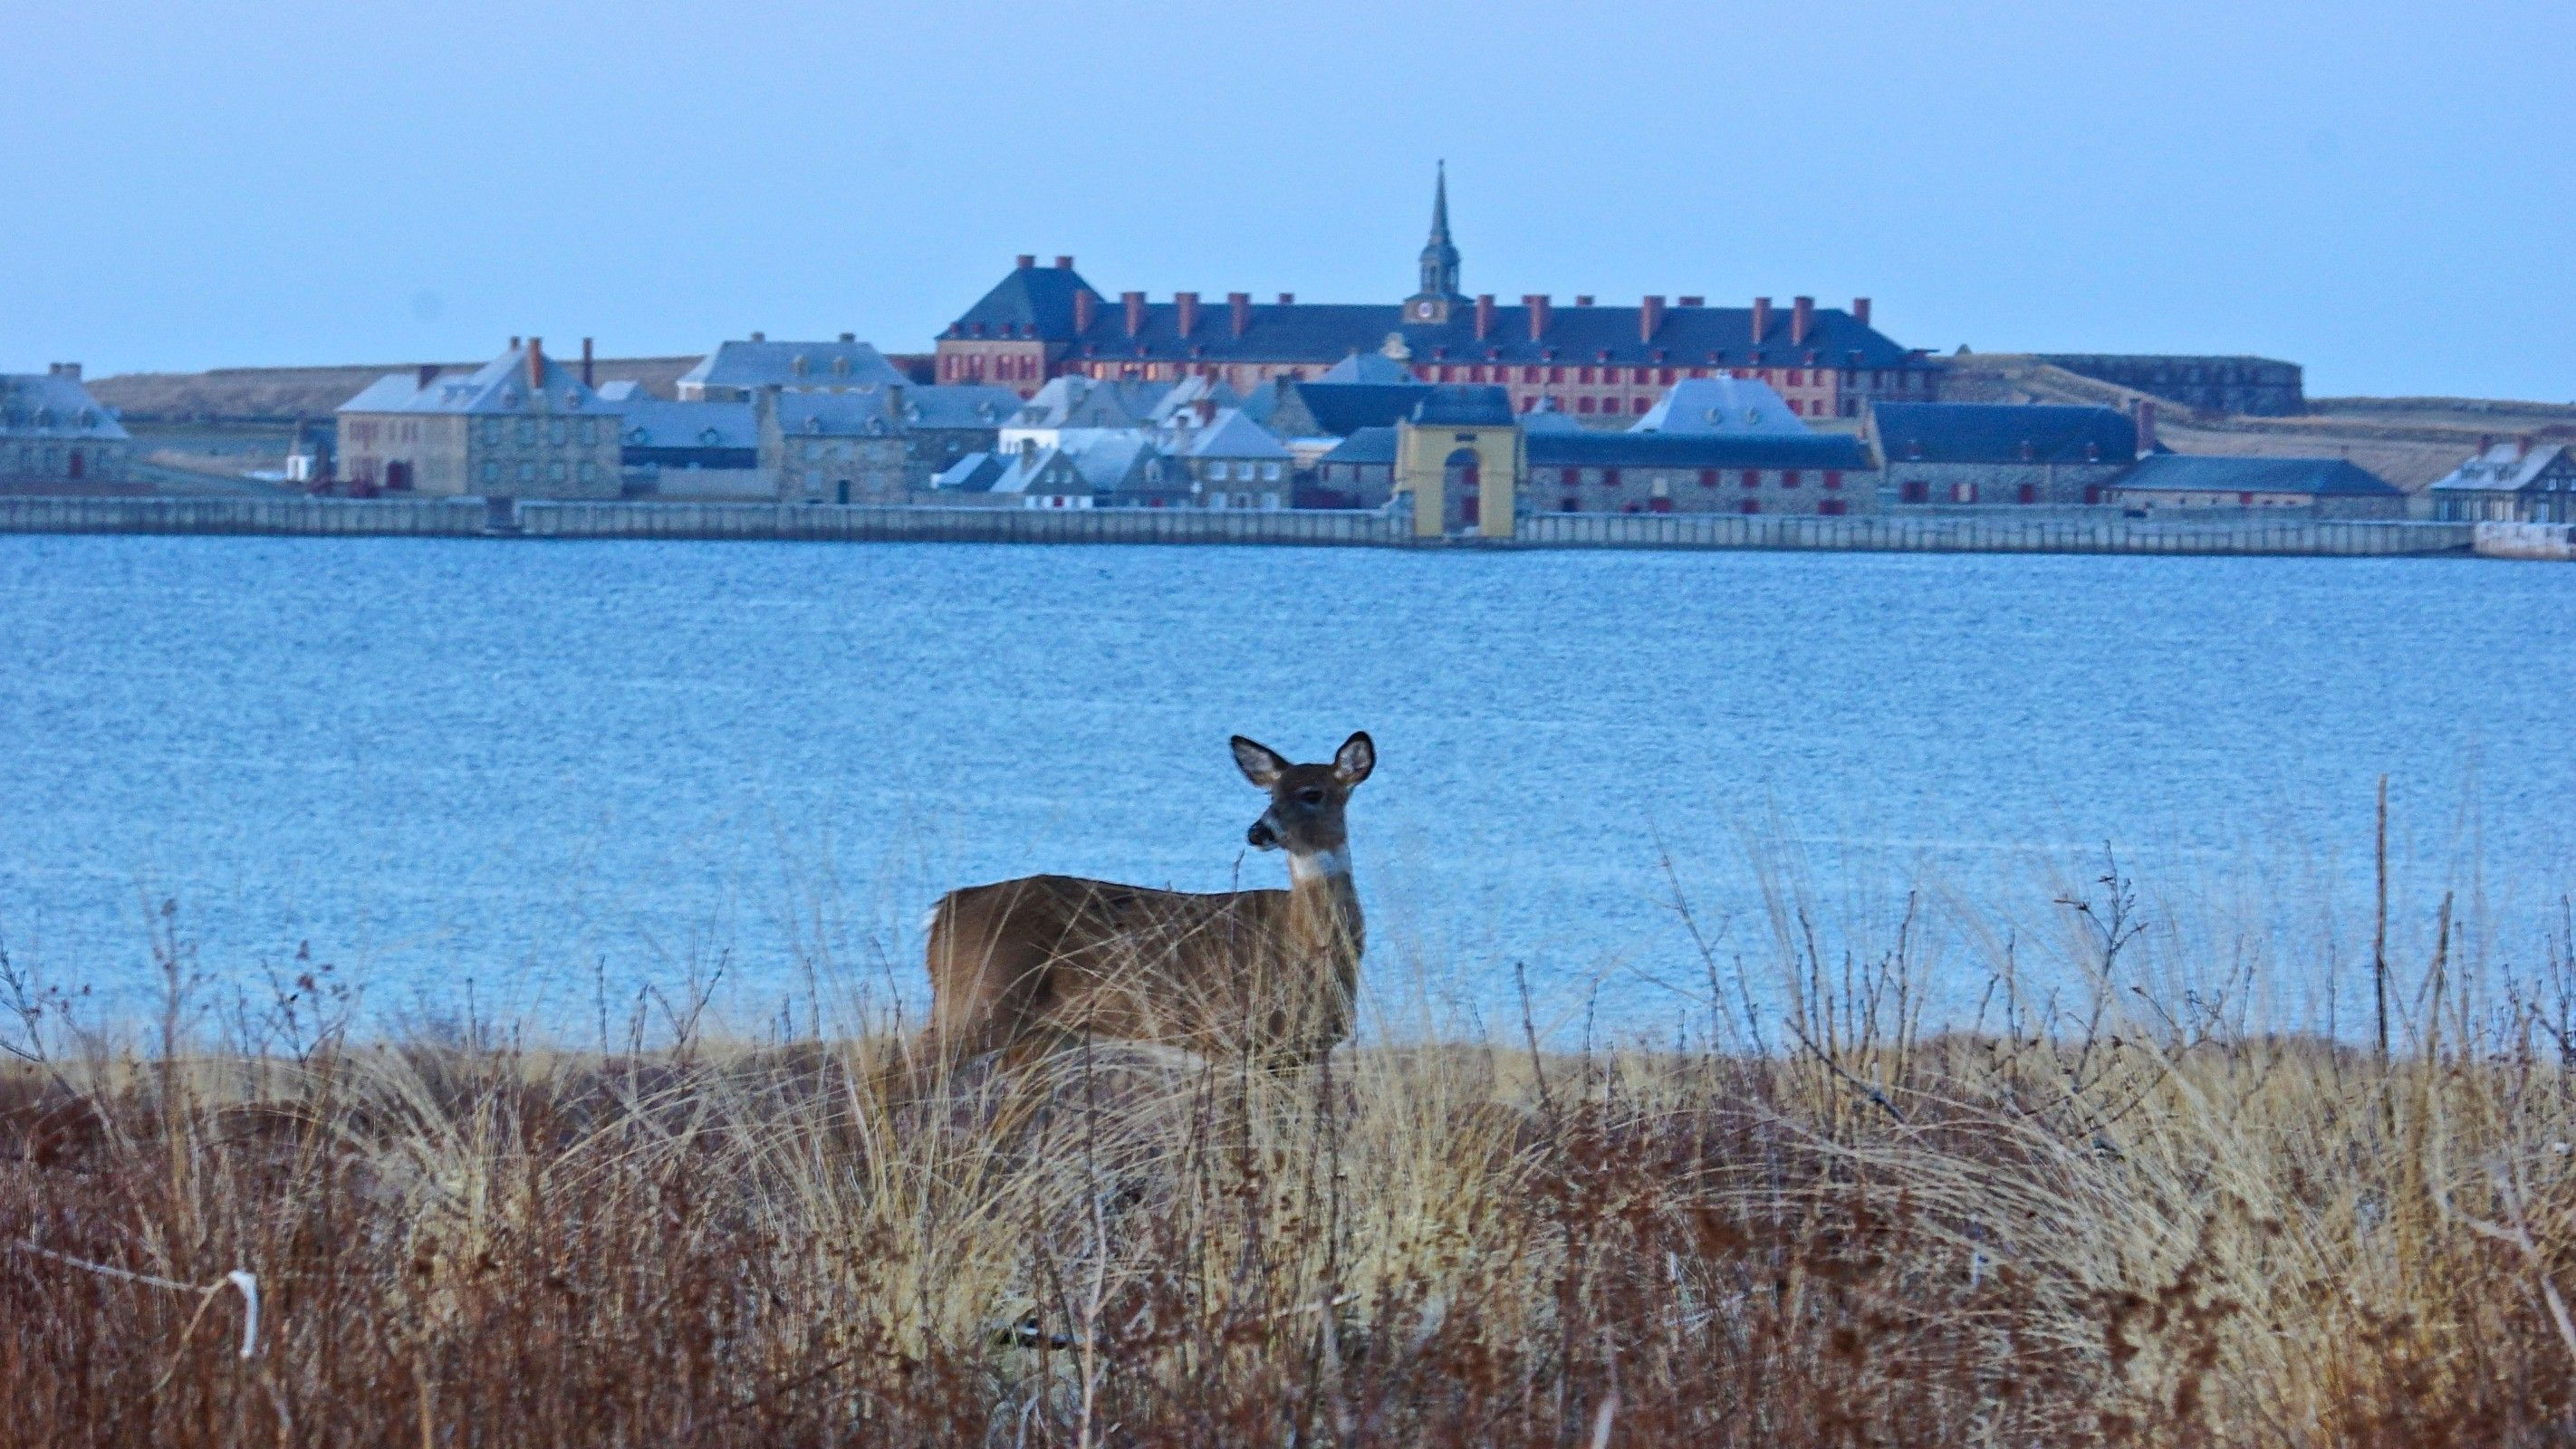 Deer in front of the Fortress of Louisbourg, Nova Scotia- Photo Credit- Ian Harte